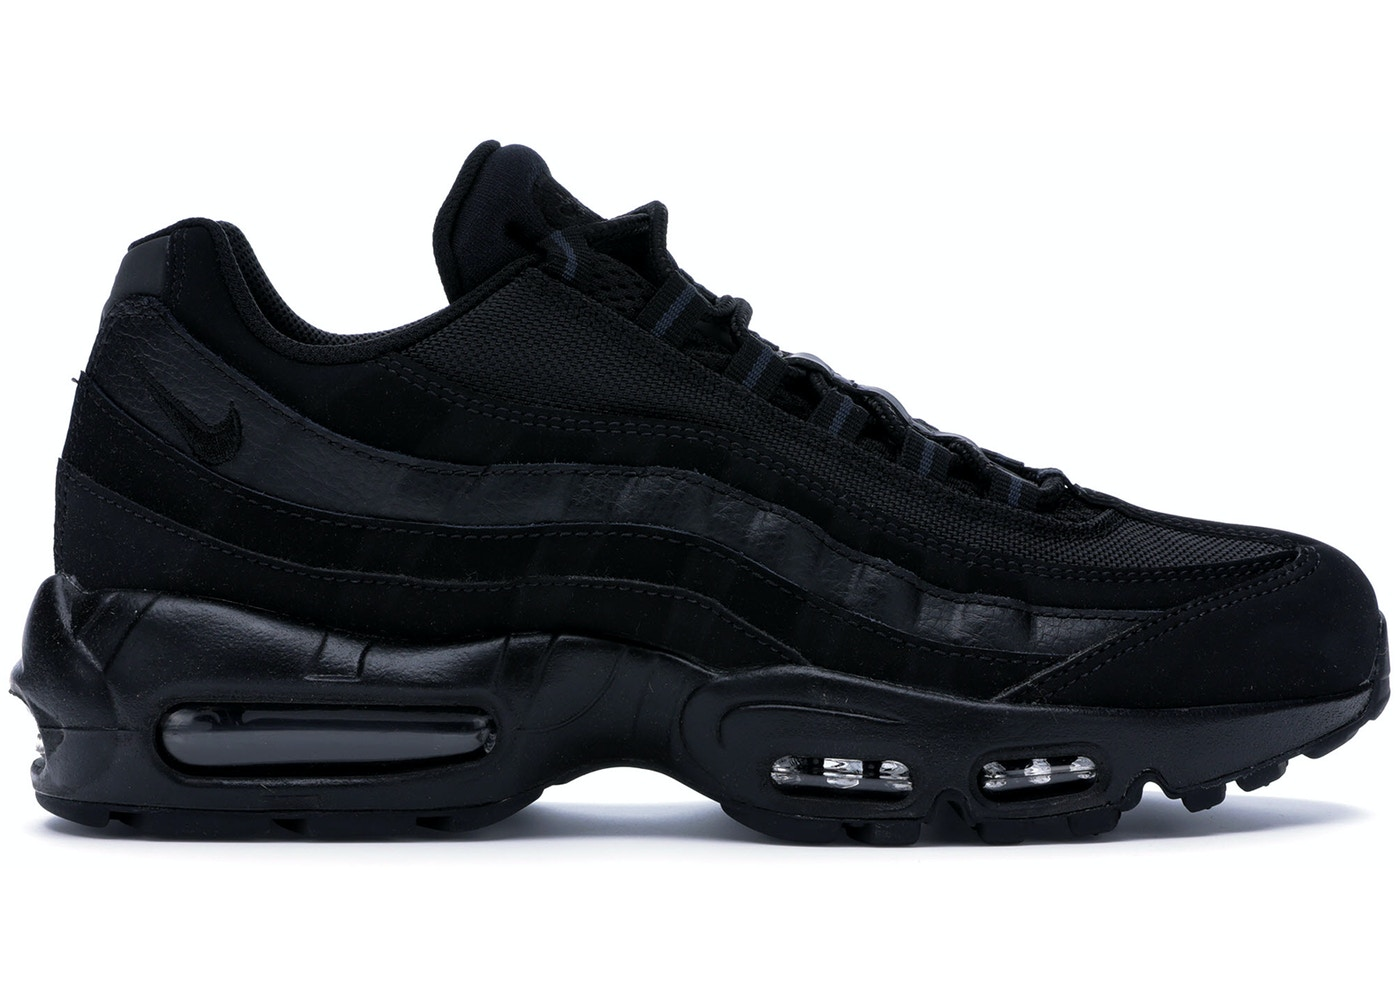 check out d9db8 811a5 Air Max 95 Triple Black (2014/2016/2018)